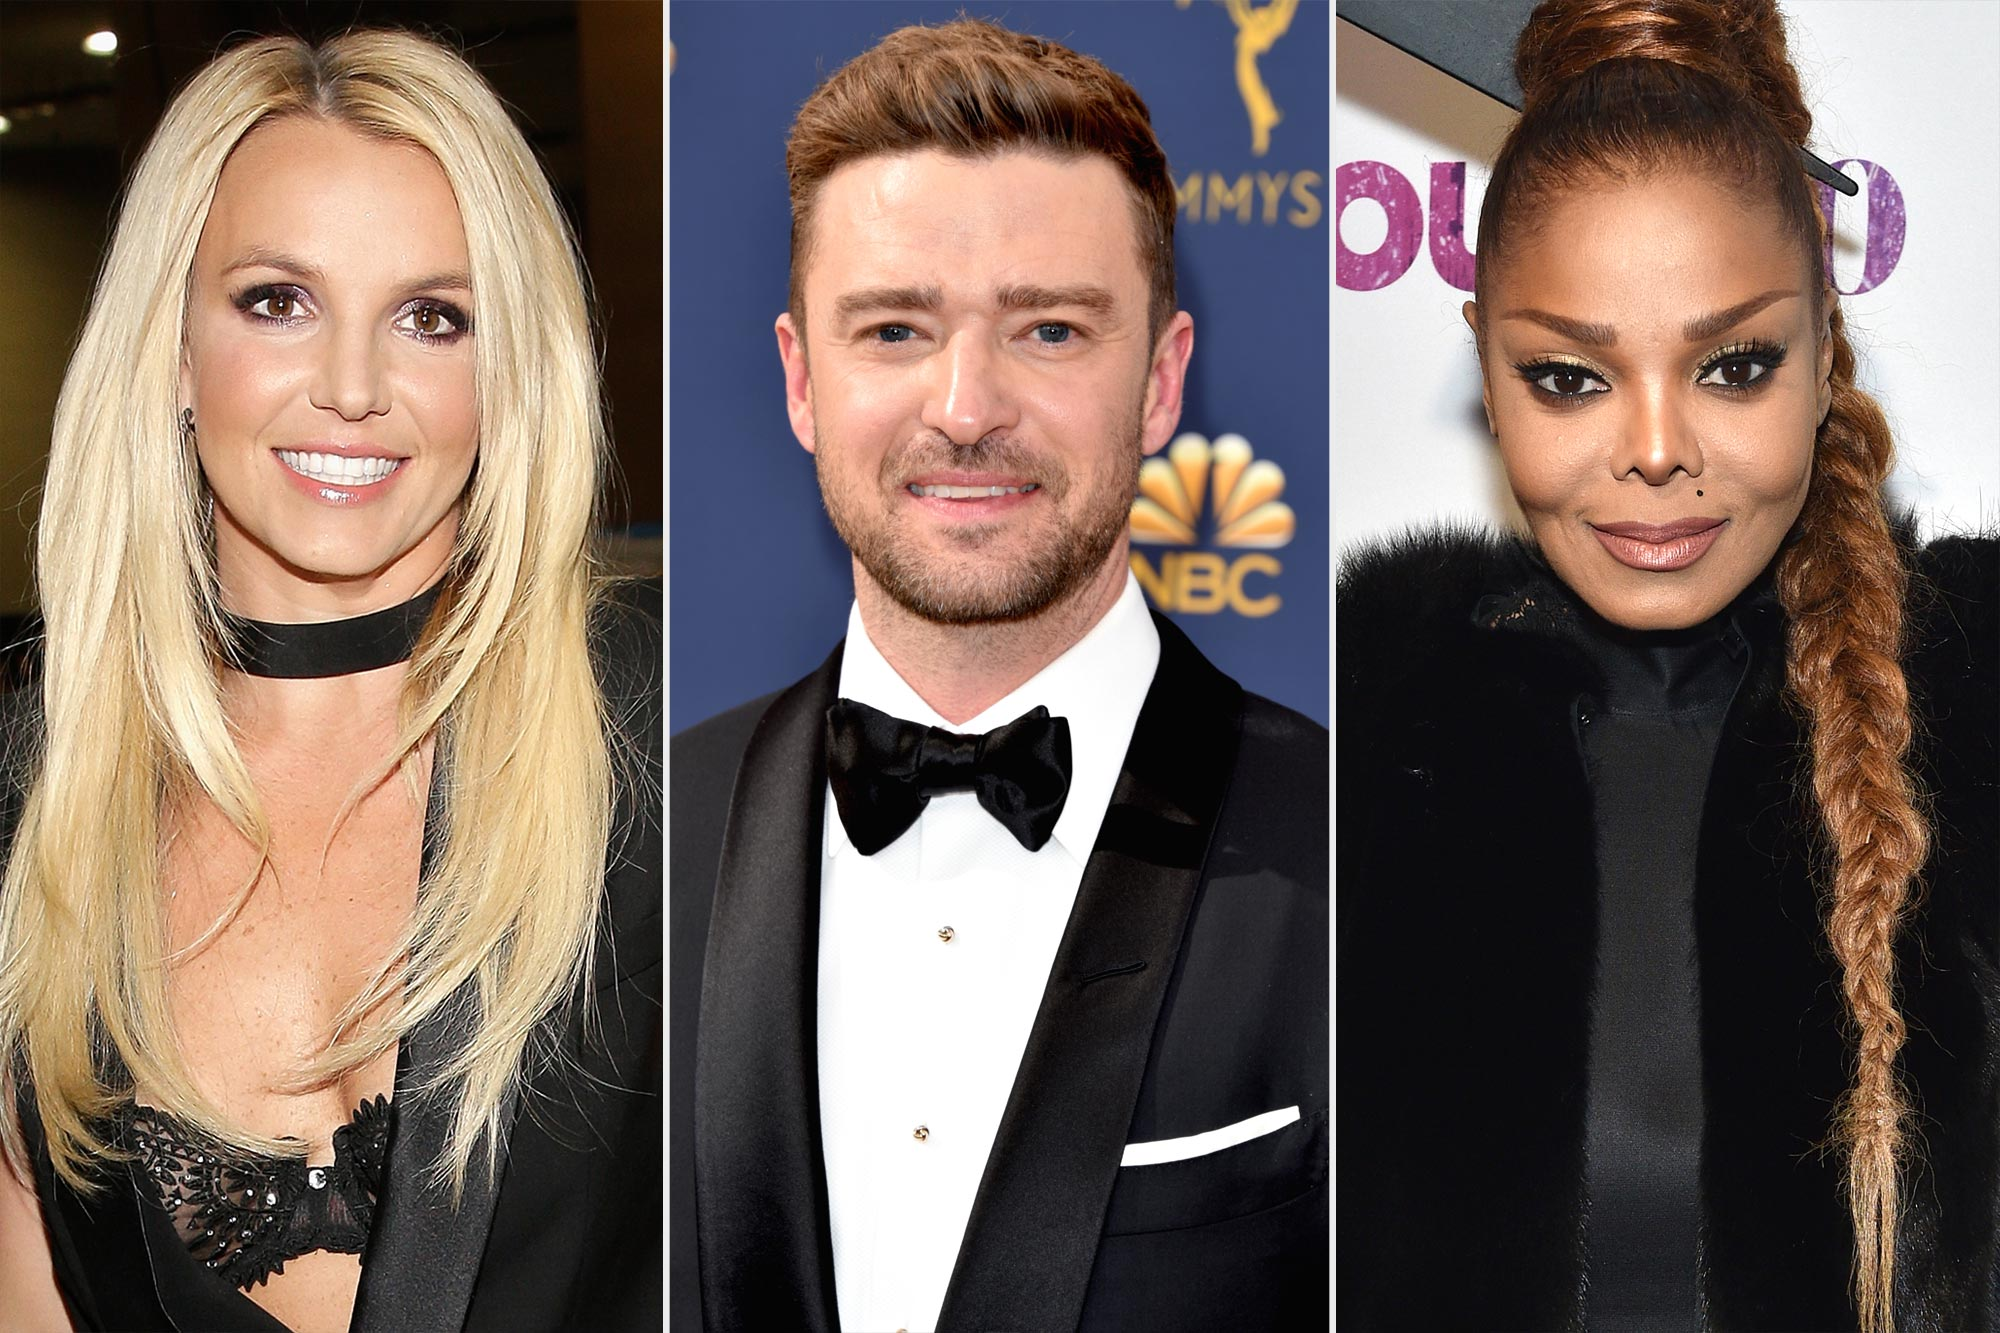 Justin Timberlake apology to Britney Spears and Janet Jackson